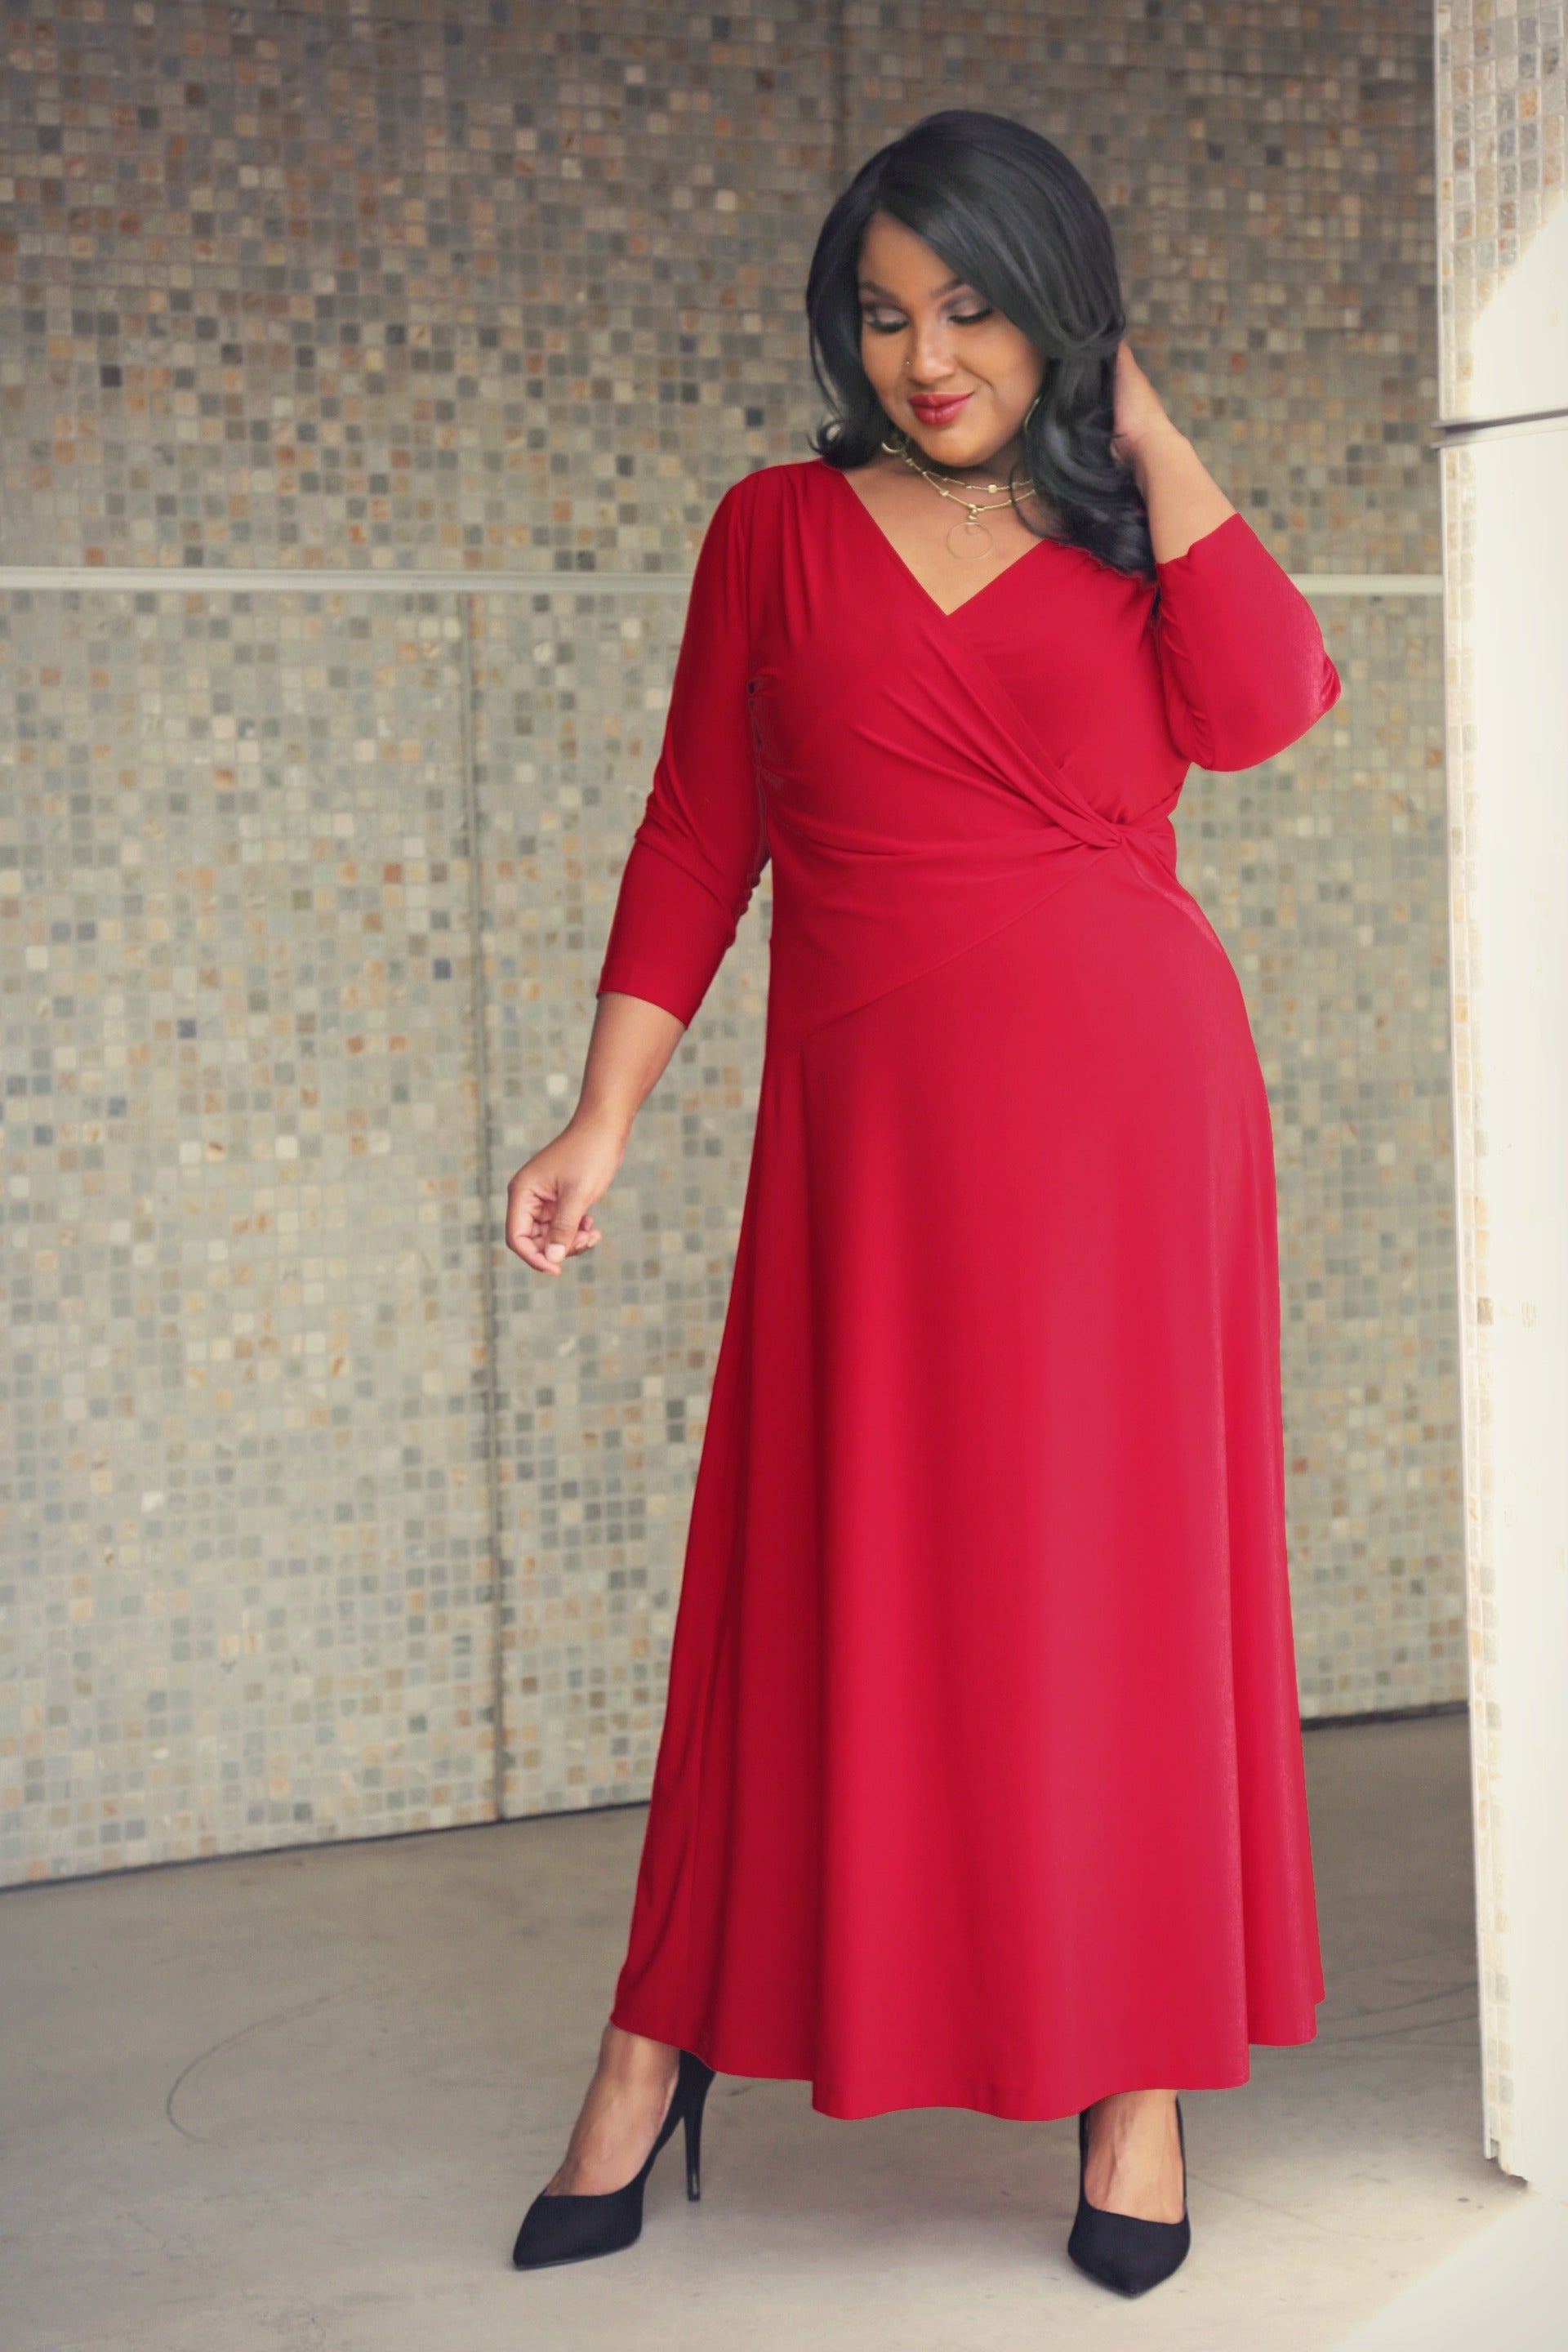 e5684a492f4c Vikki Vi Jersey Red Faux Wrap Maxi Dress - PlusbyDesign.com